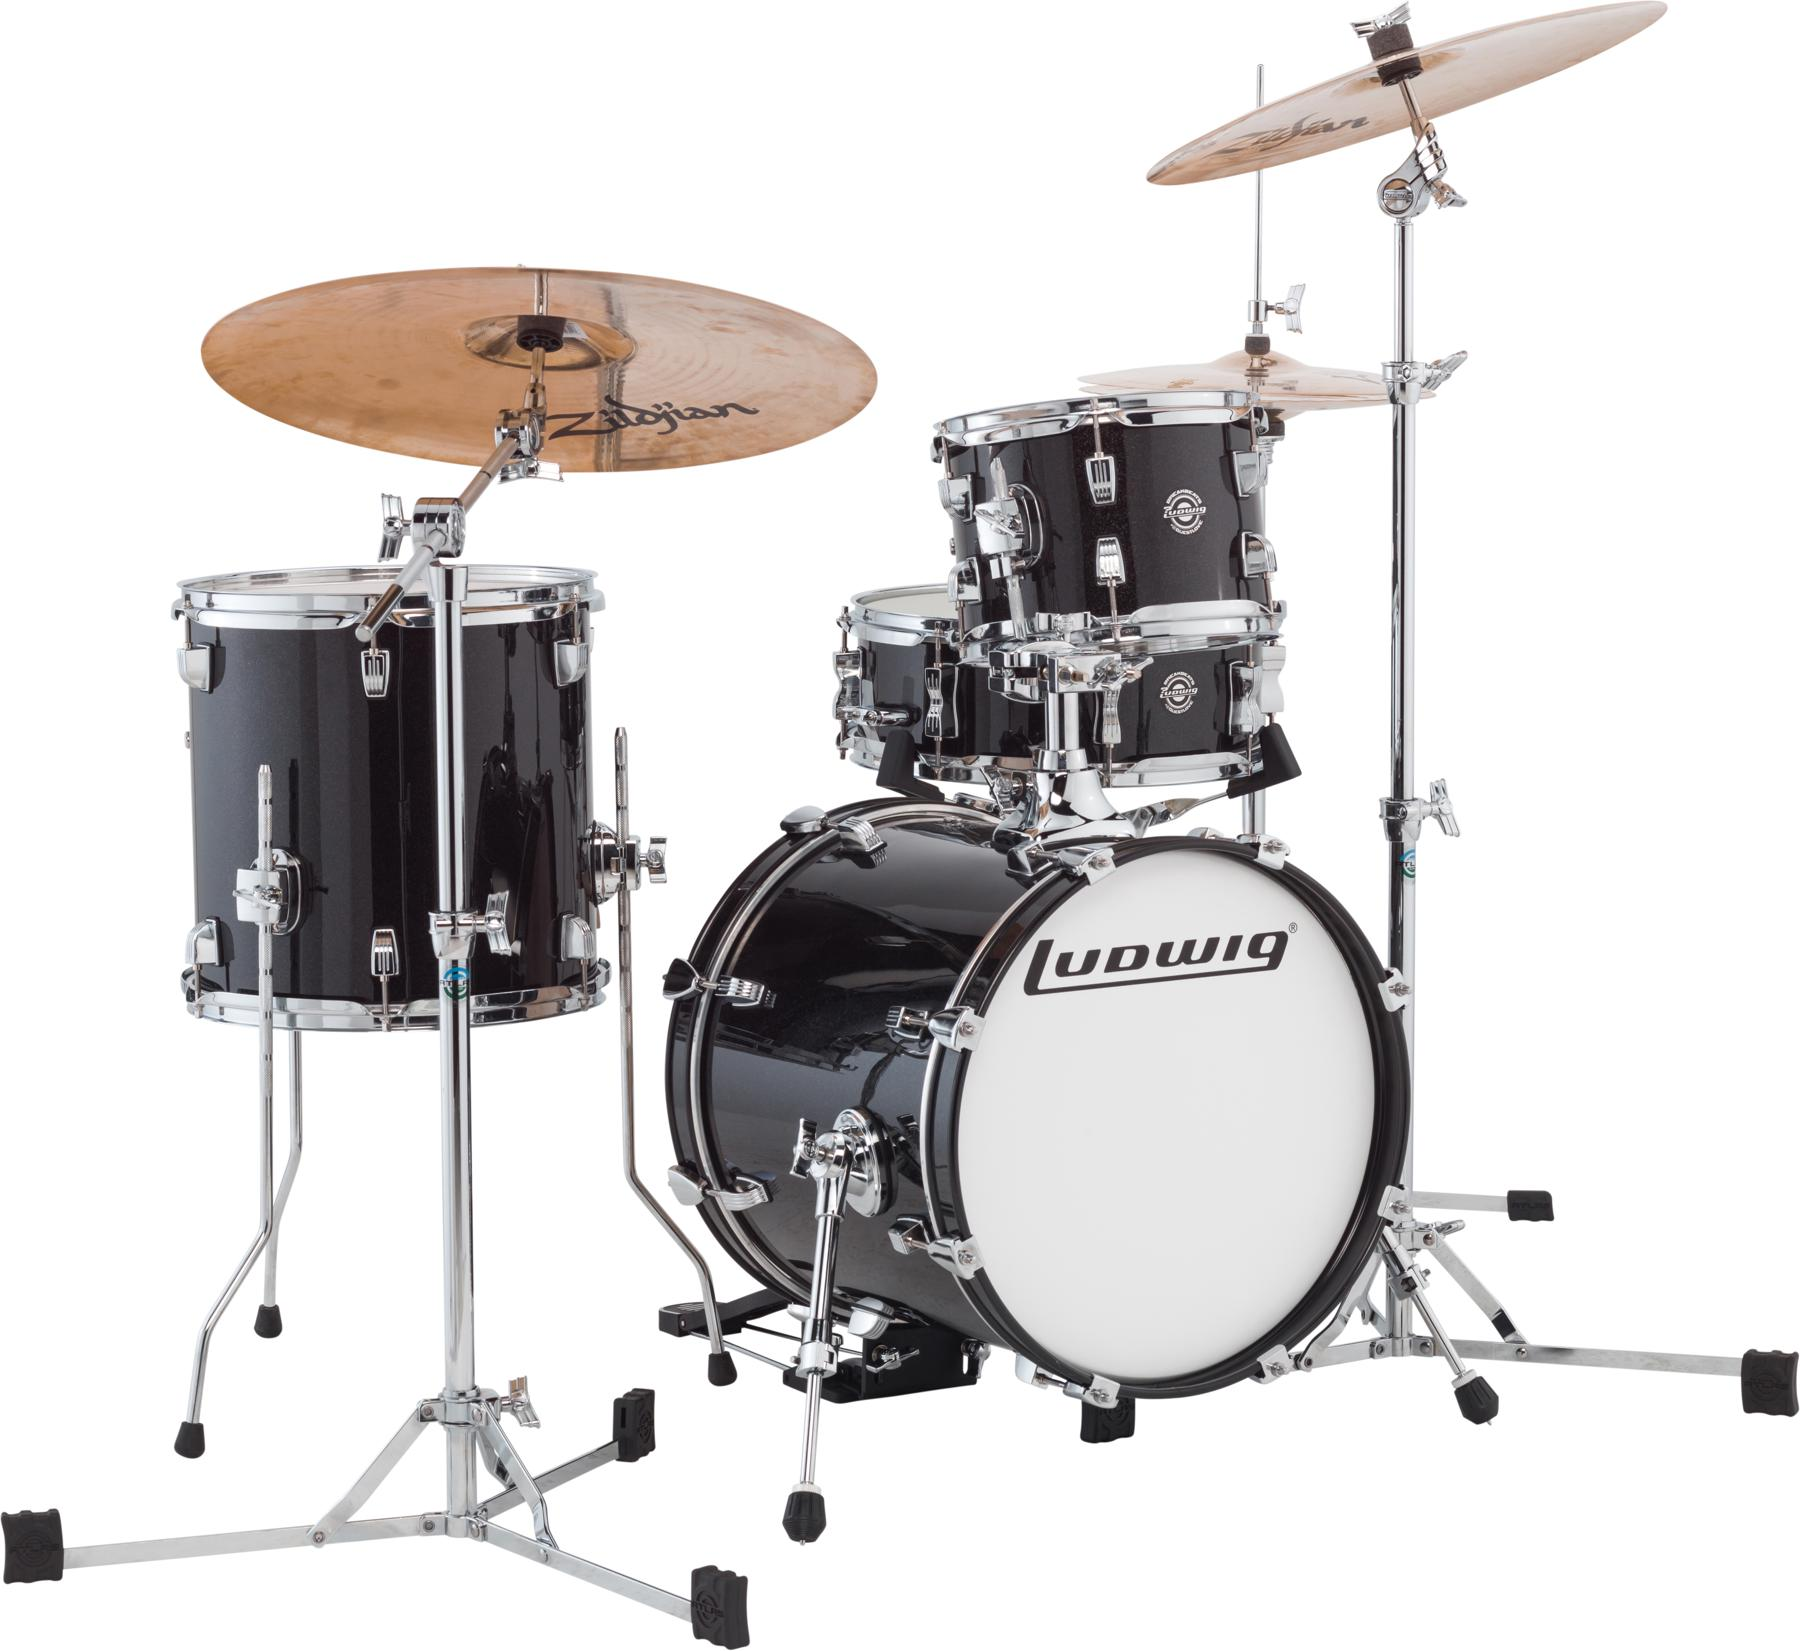 3. Ludwig Breakbeats By Questlove (4-Piece Shell Pack)